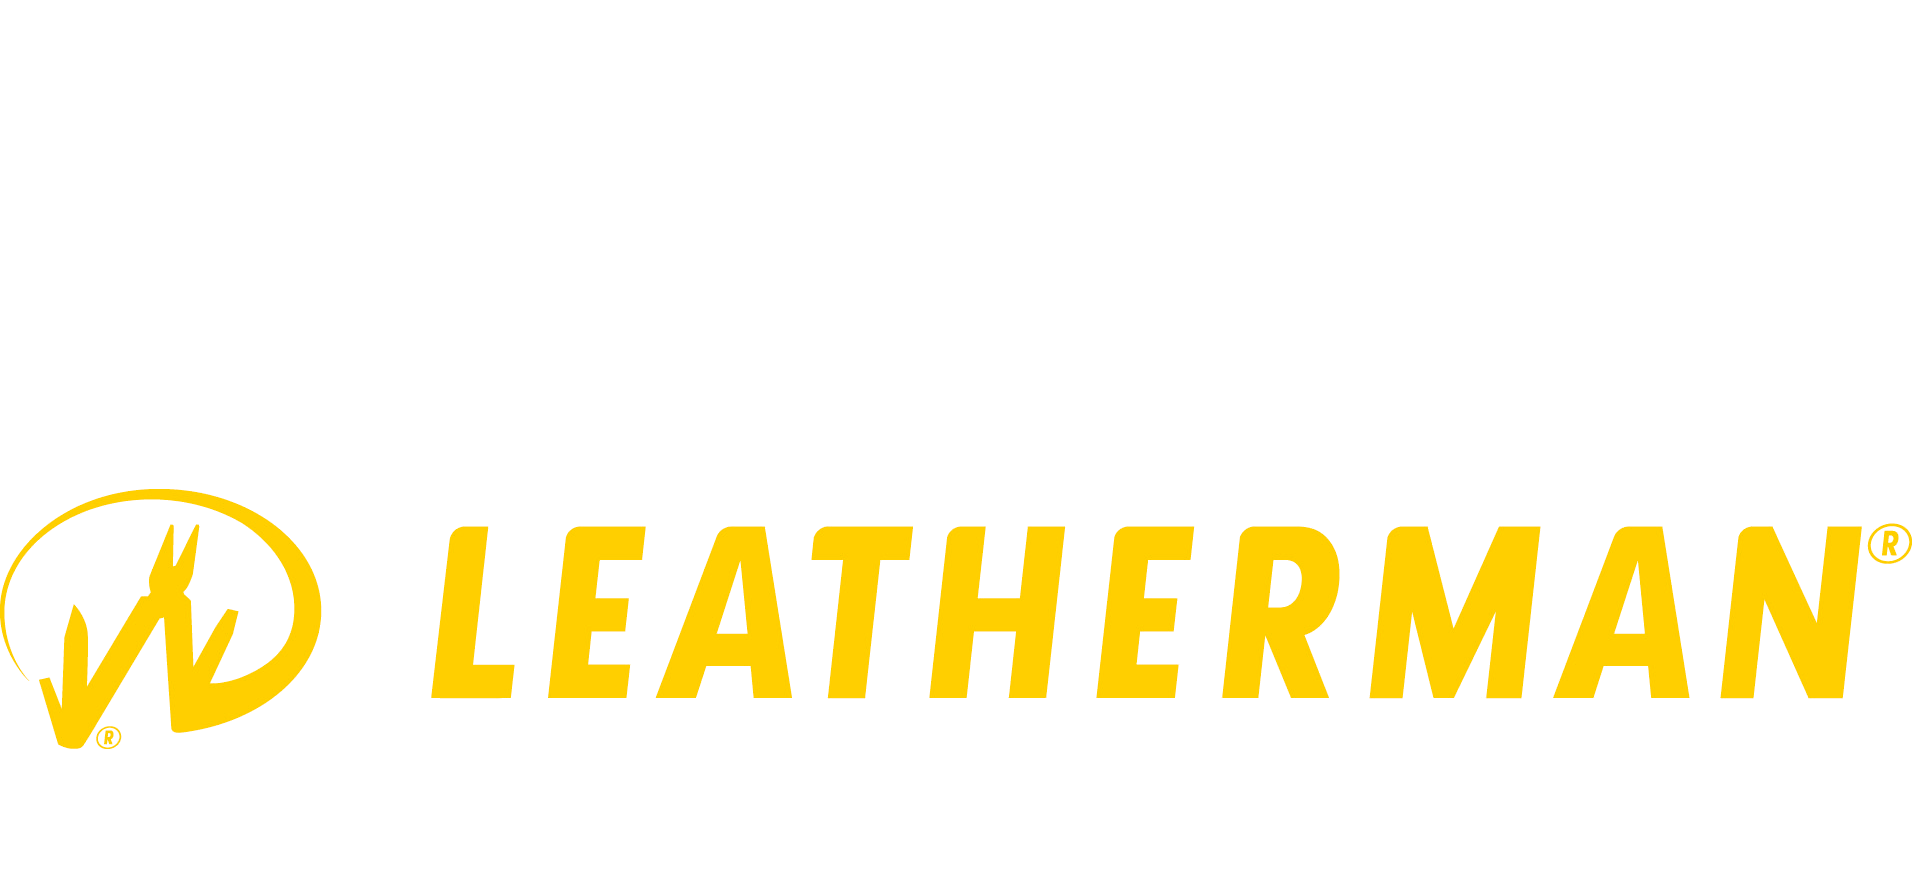 Leatherman Corporate